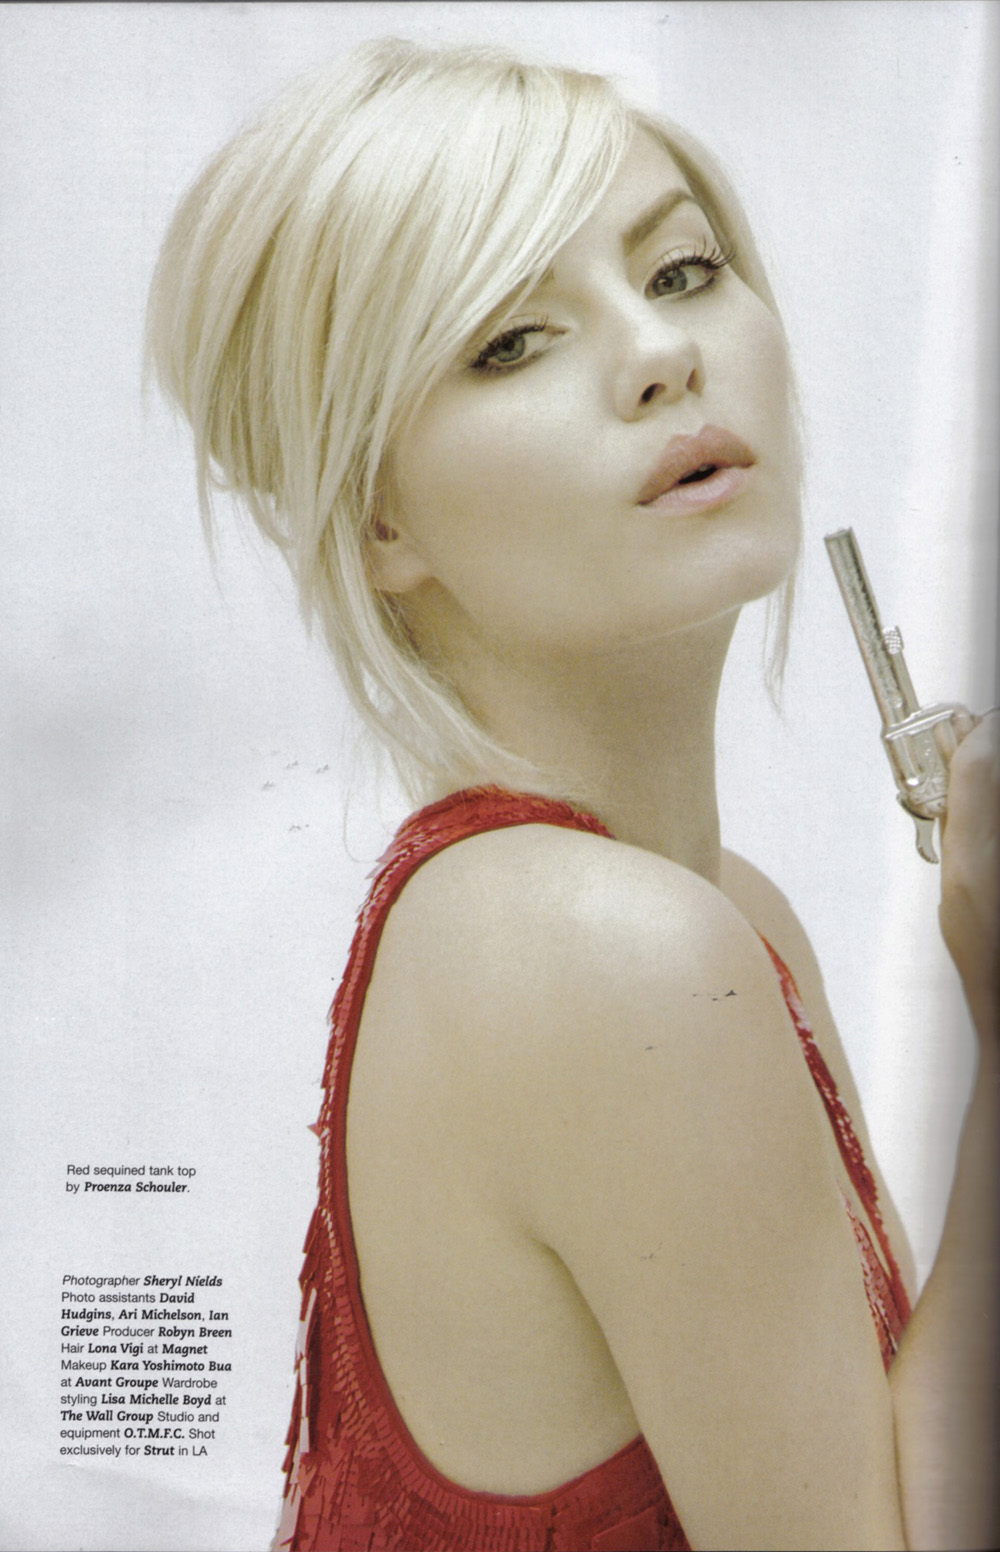 Elisha Cuthbert Latest Photos: Download Exclusive Elisha Cuthbert HomeMade Photo, Elisha